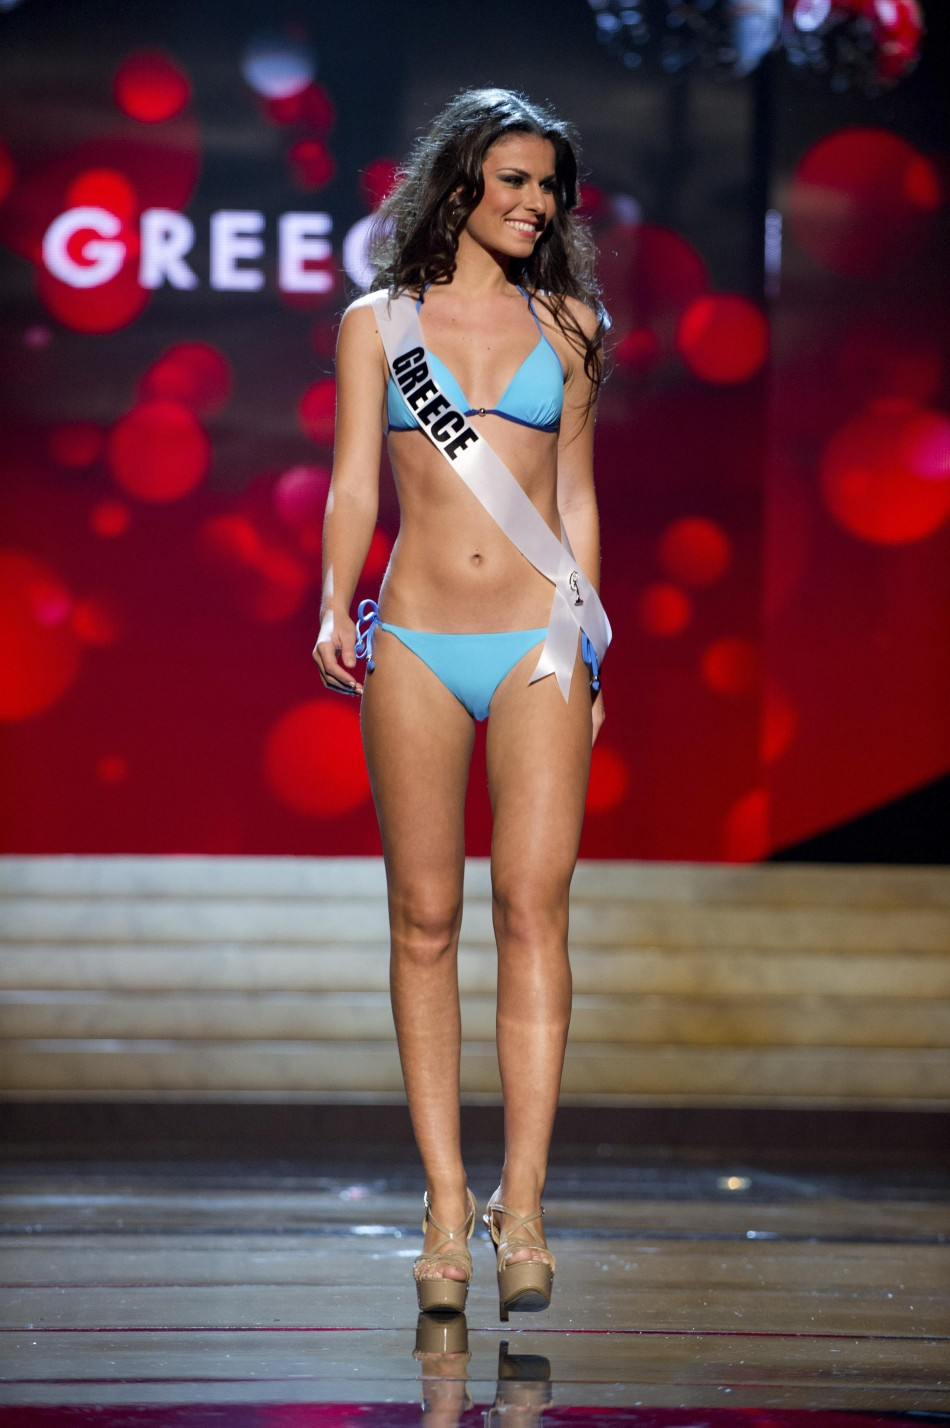 Miss Greece Vasiliki Tsirogianni at the Swimsuit Competition of the 2012 Miss Universe Presentation Show at PH Live in Las Vegas